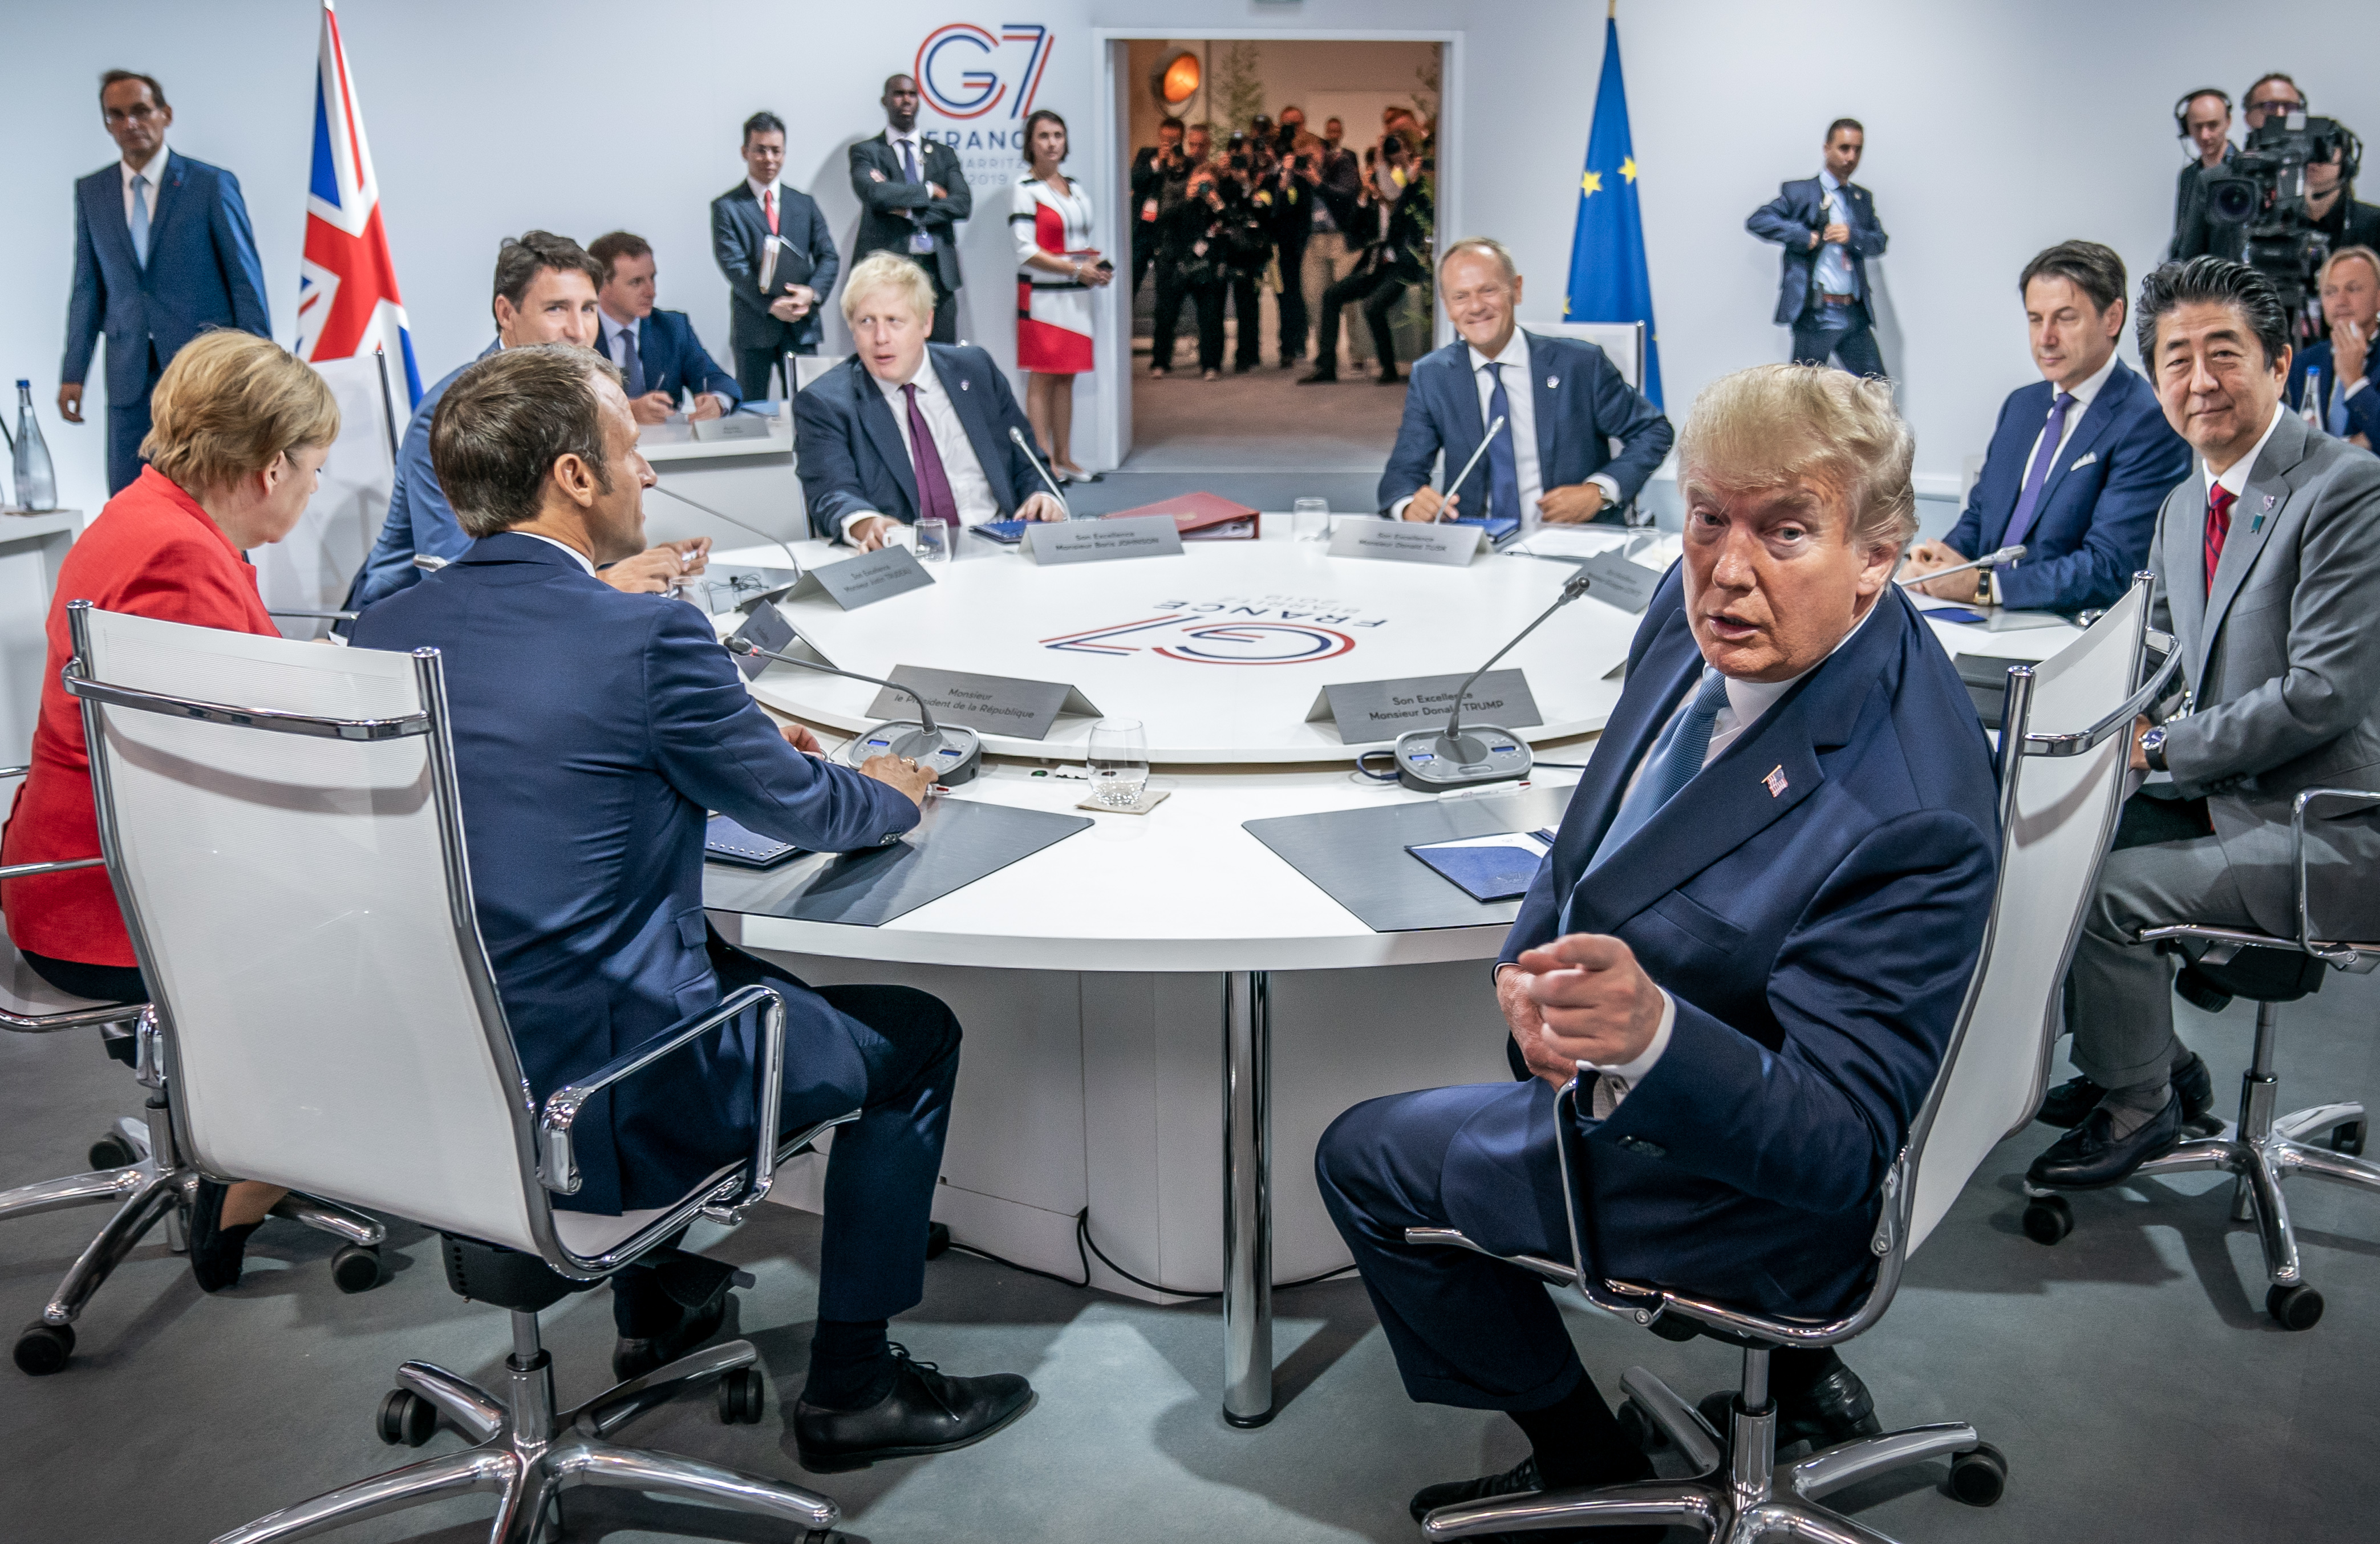 Donald Trump points at the viewer as other G7 leaders speak to one another at a round table with the summit's red, white, and blue logo.